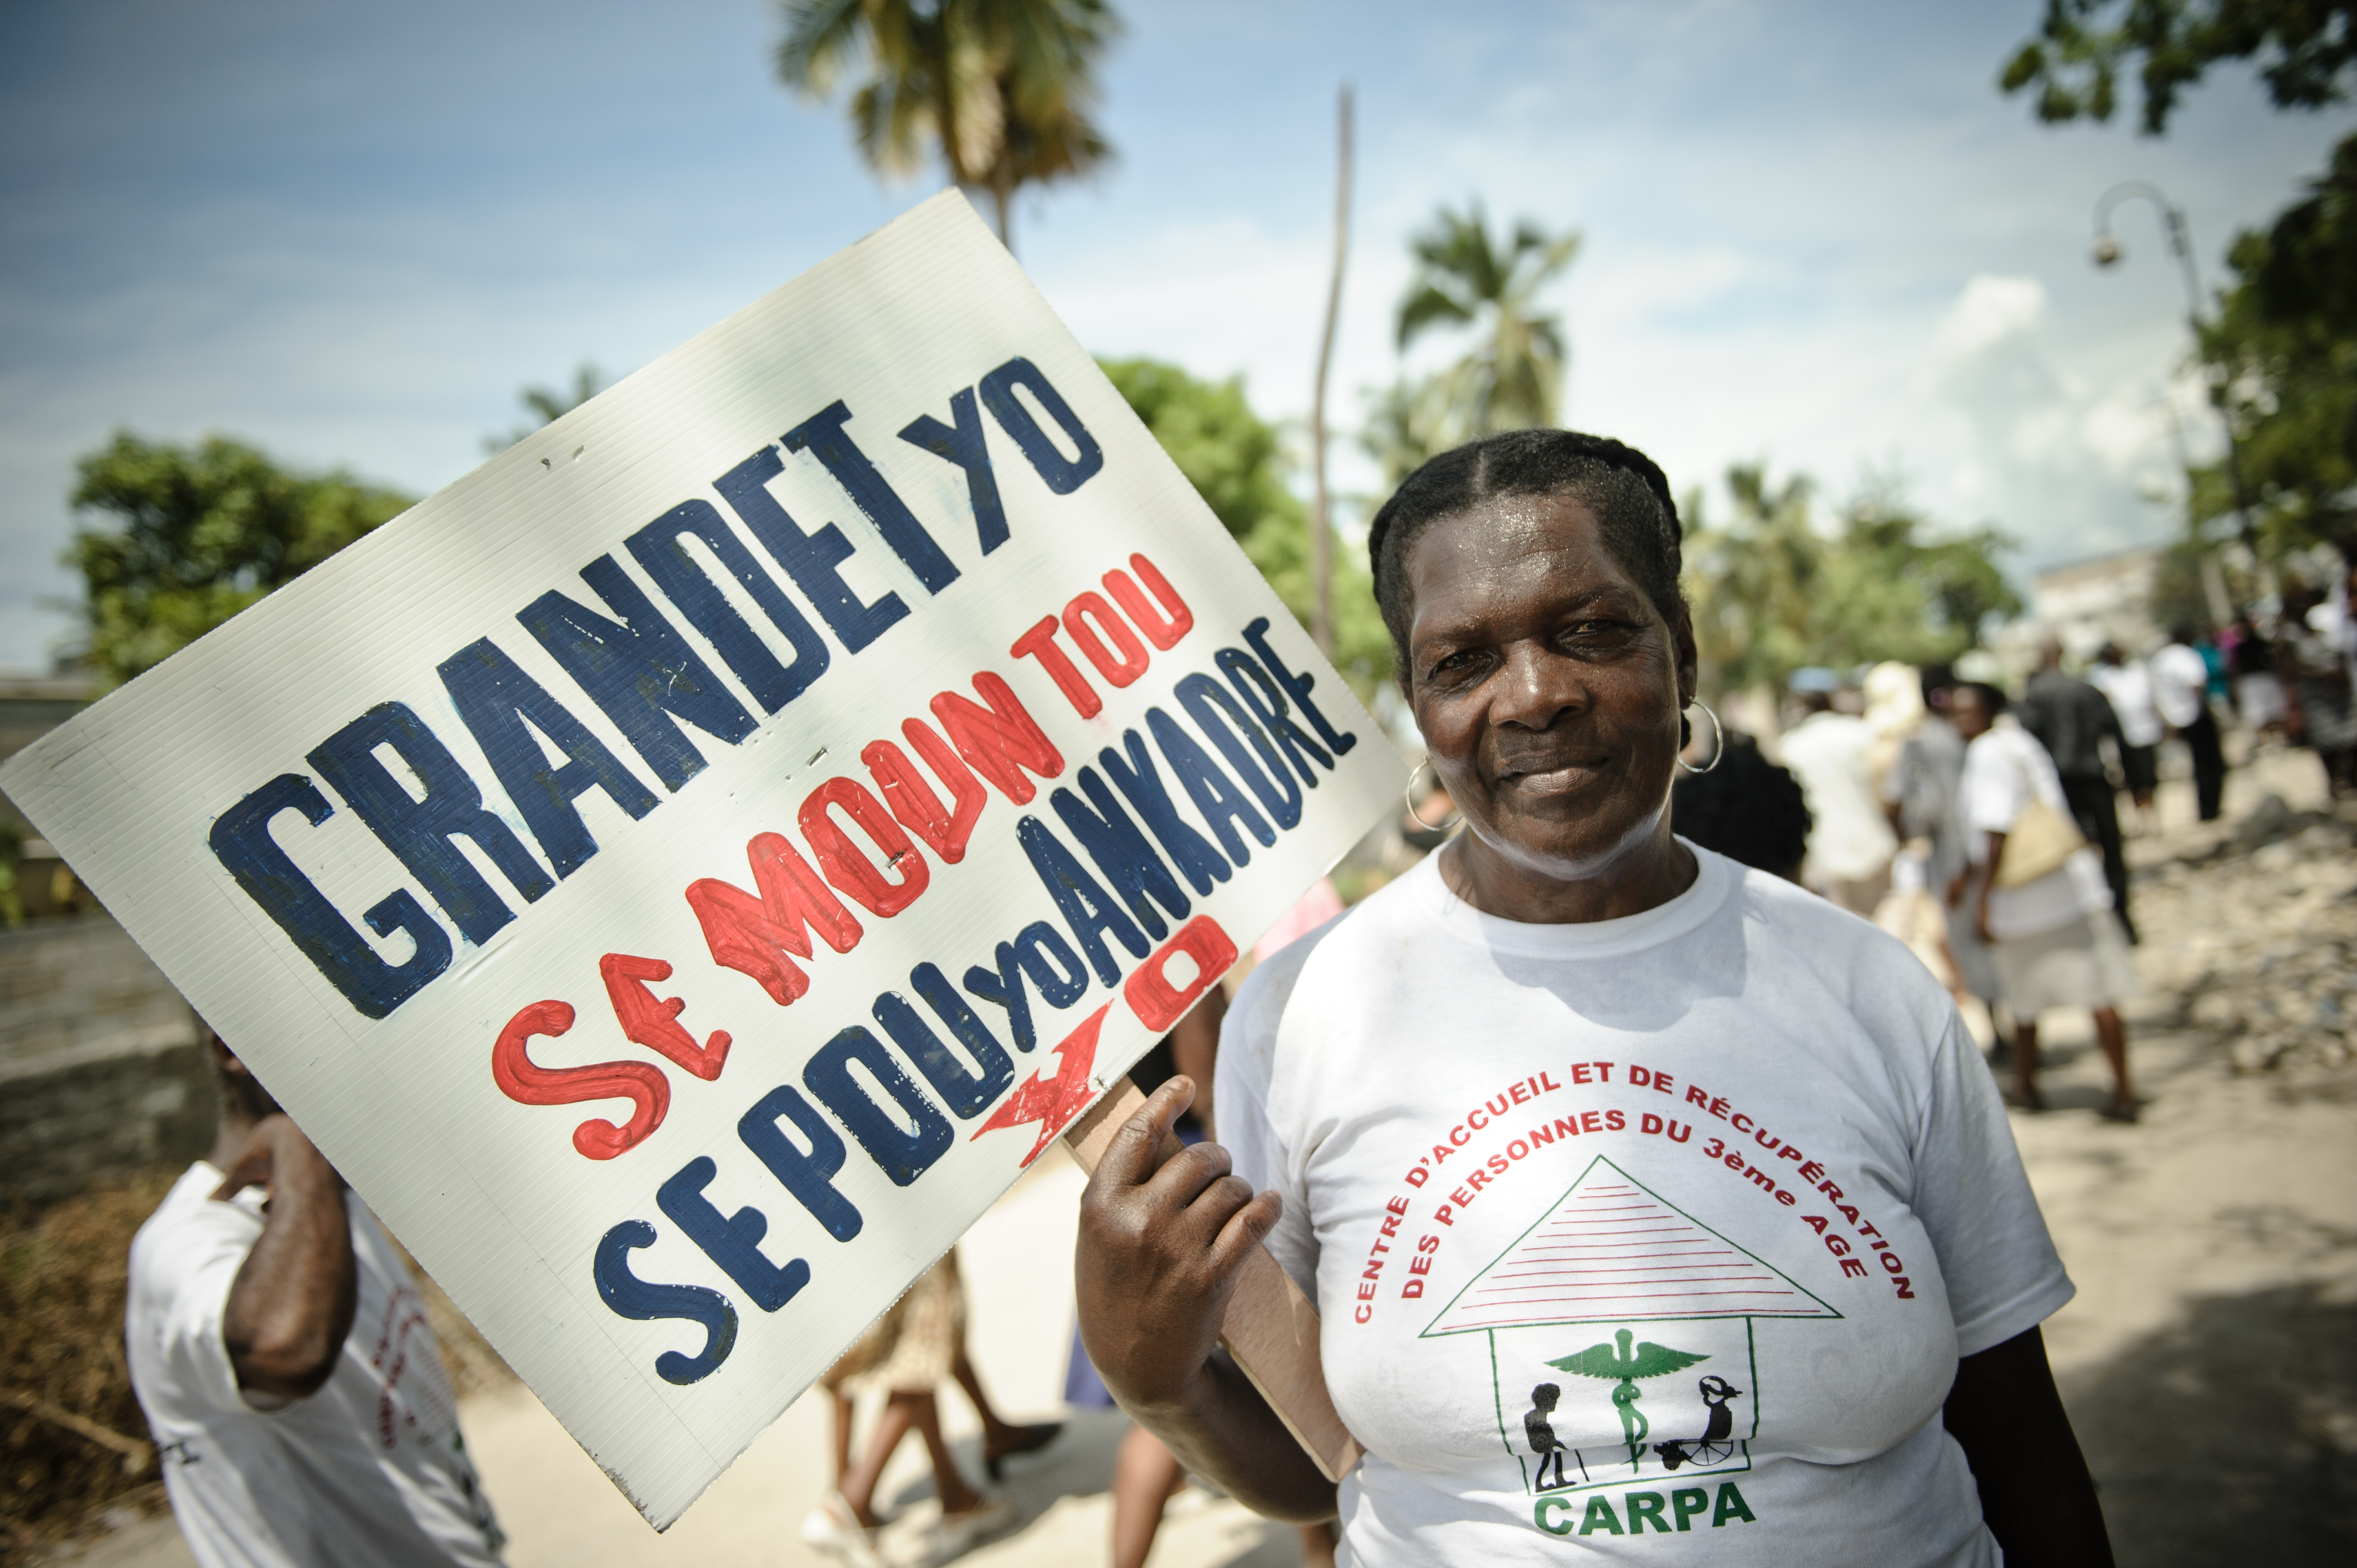 An older woman marching for her rights in Haiti.